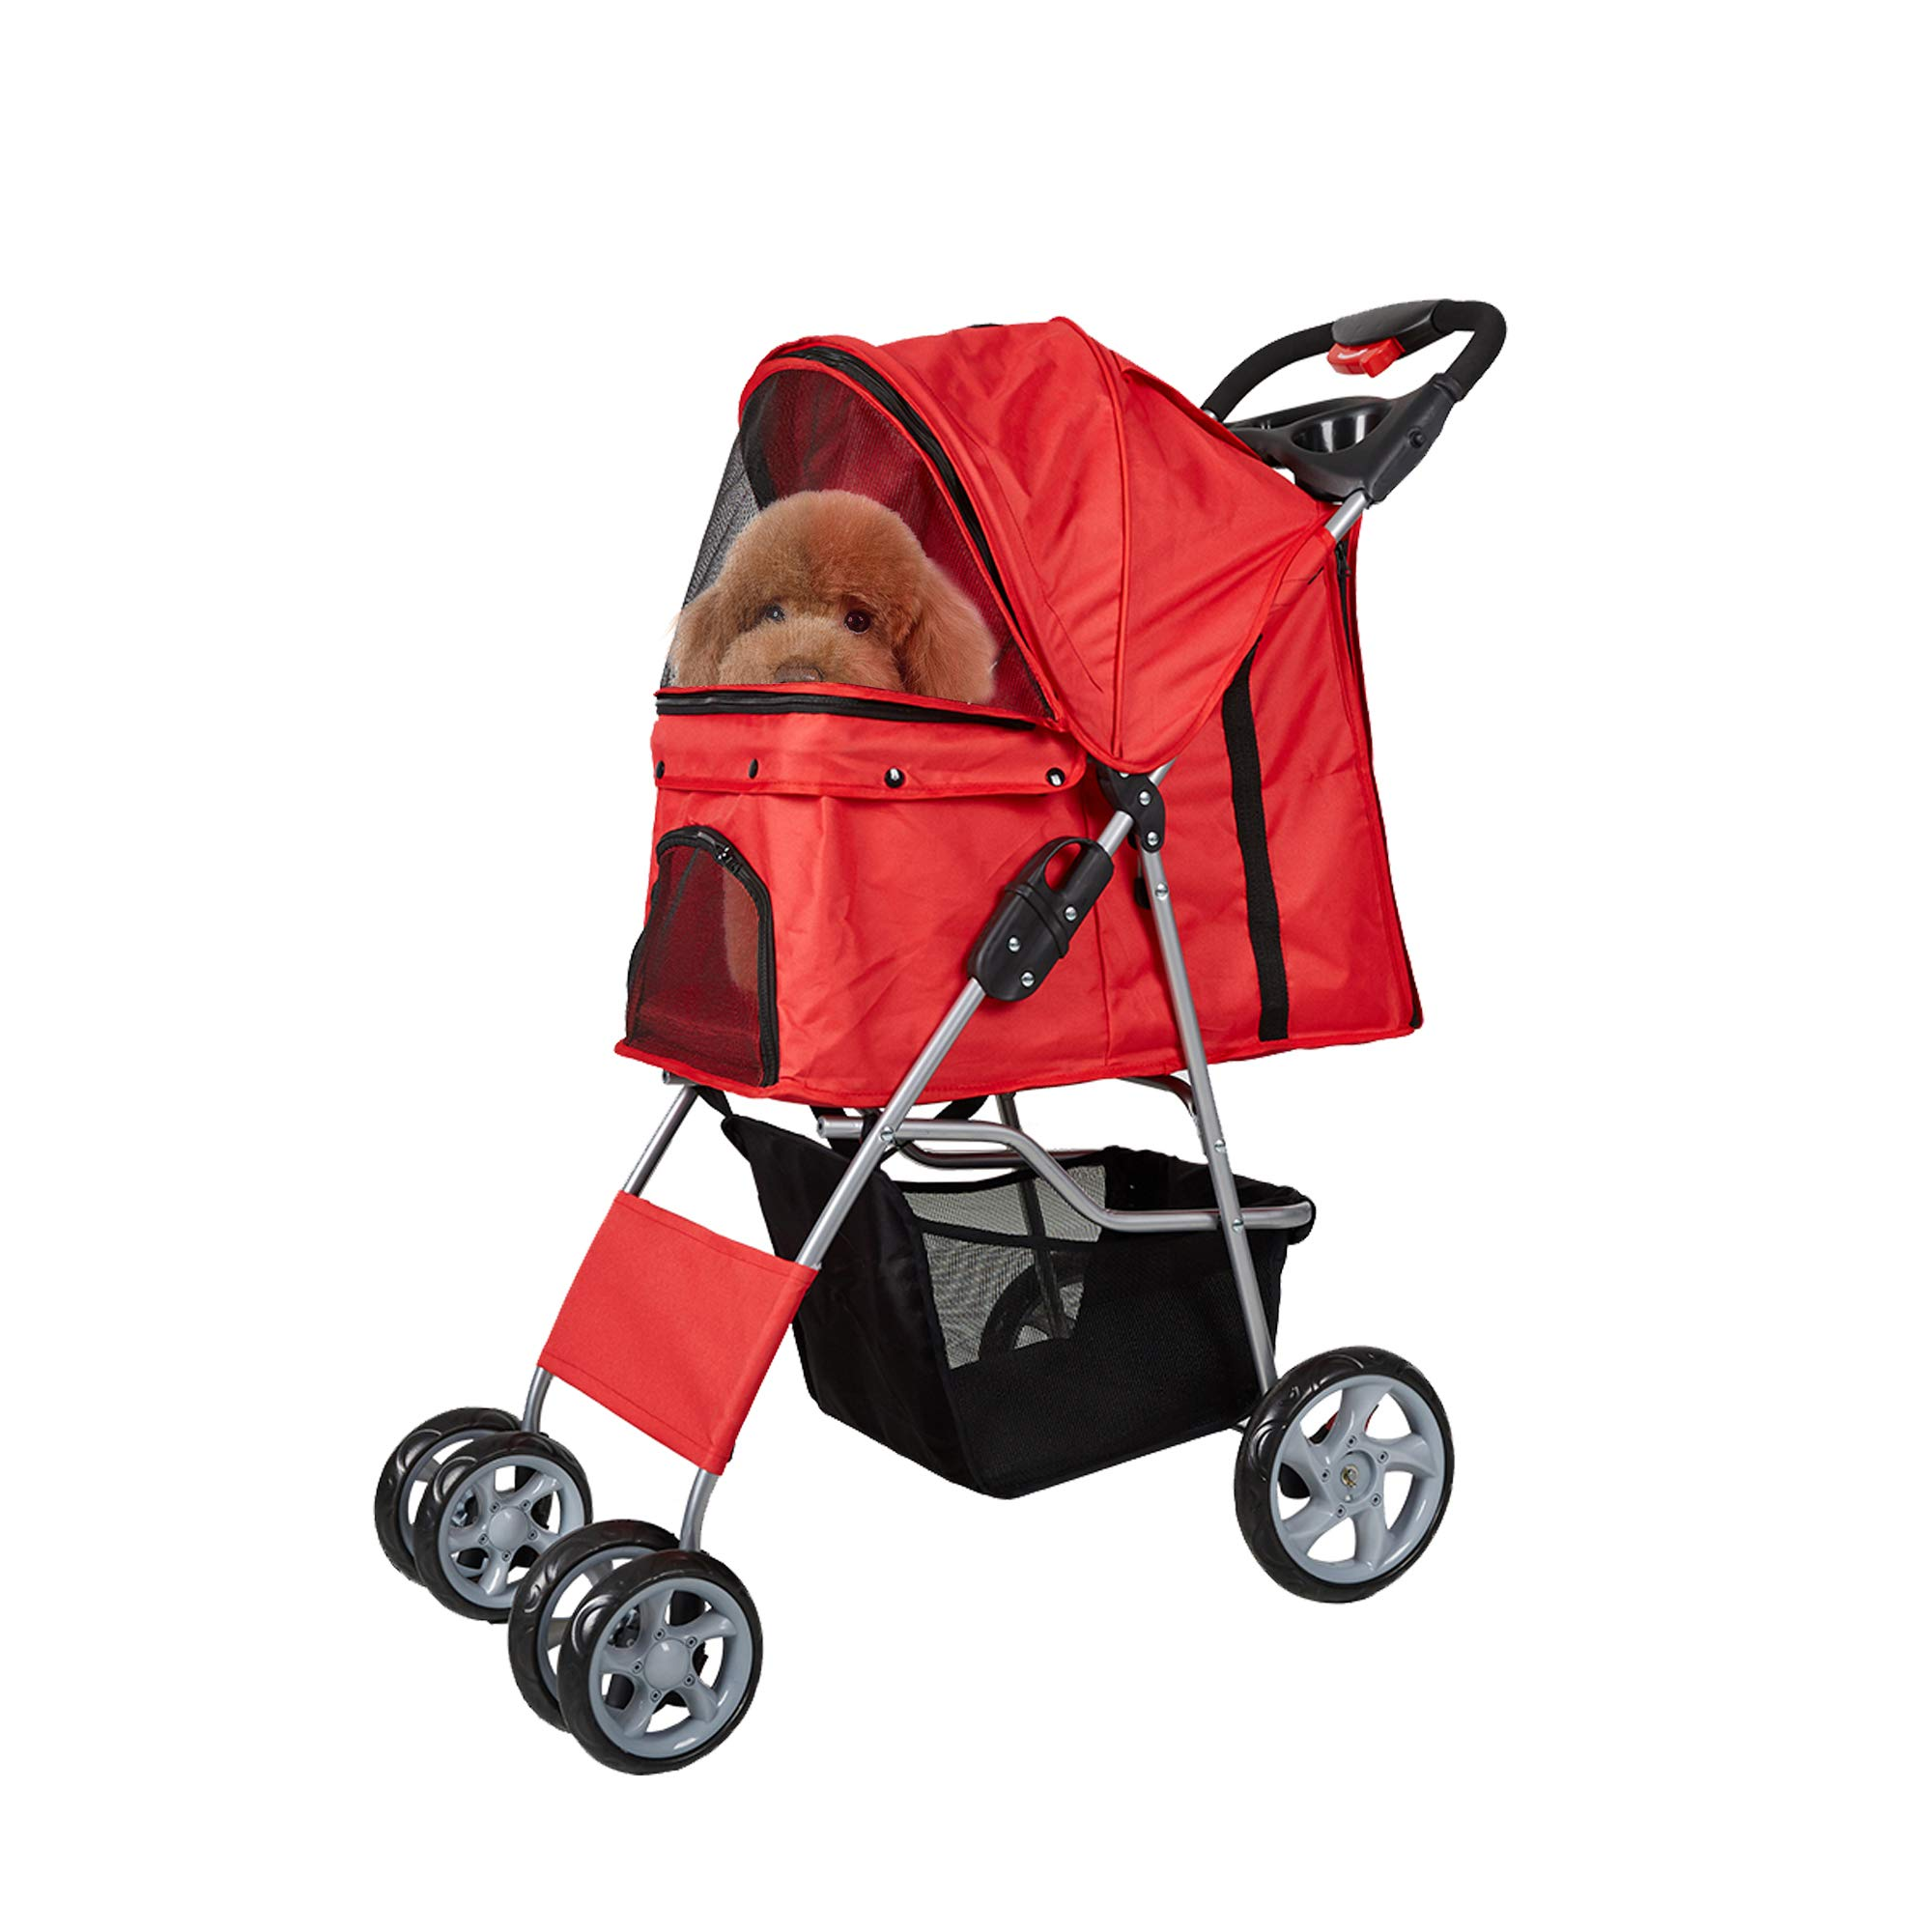 Lucky Tree Dog Stroller for Small Dogs Cat Pet Stroller with 4 Wheels, Easy Walk Jogger Travel Carrier Cart Cage, Red by Lucky Tree